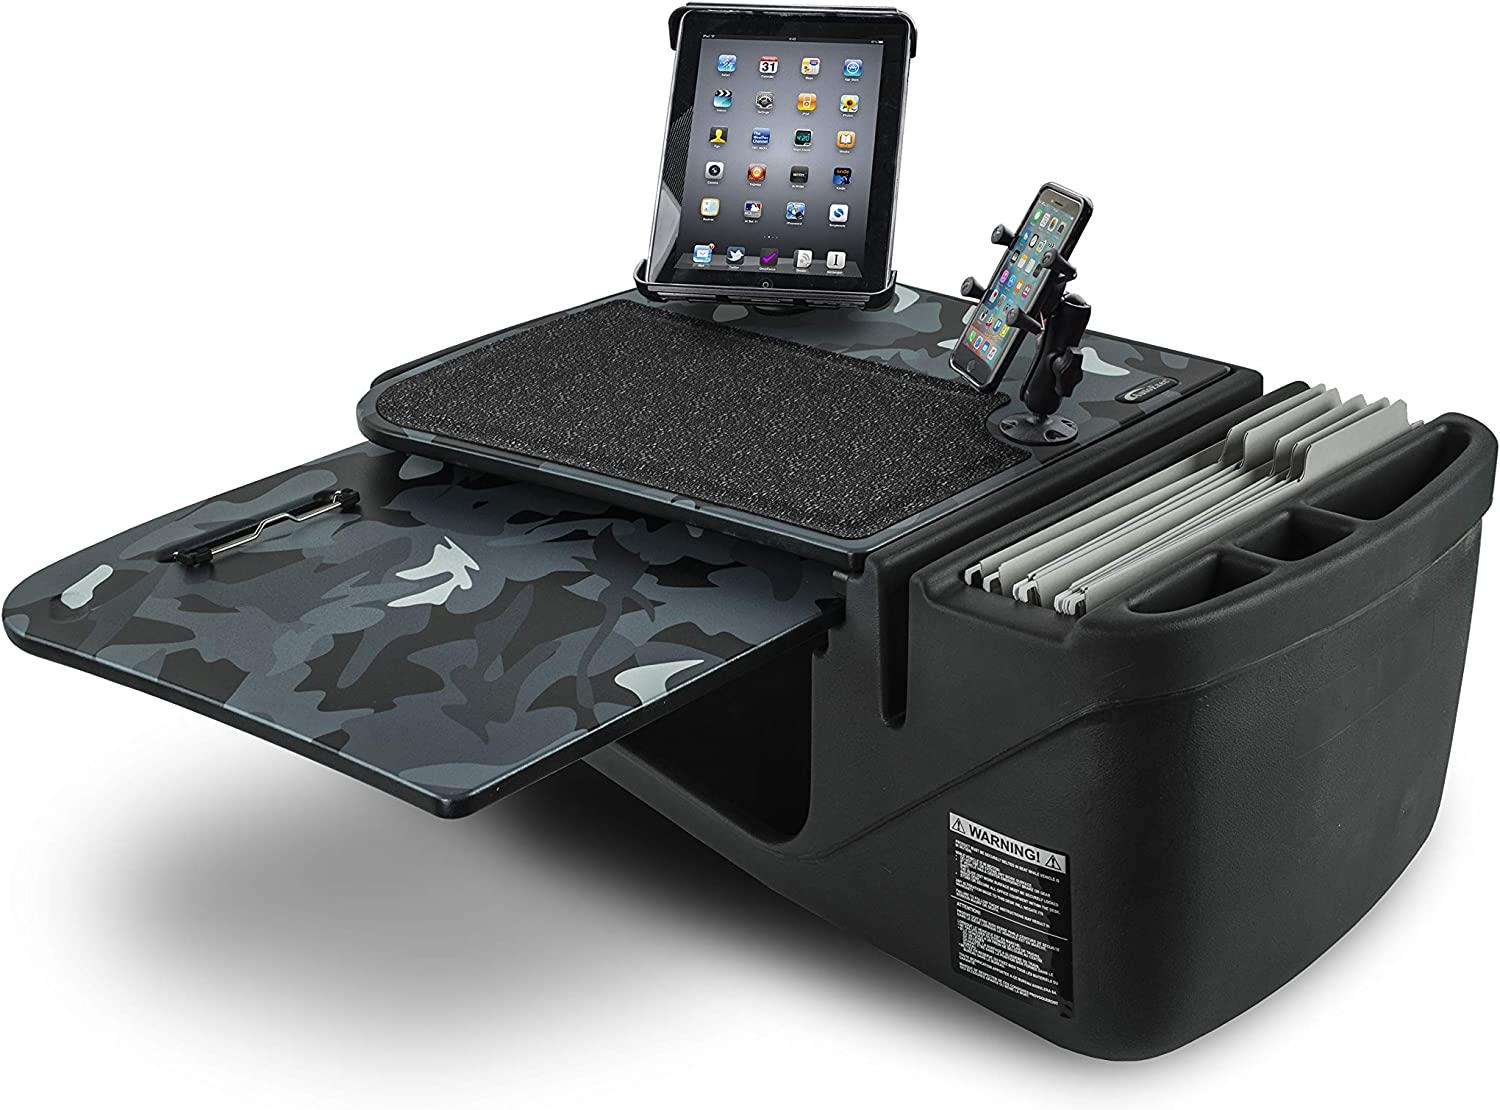 AutoExec GripMaster Car Desk Urban Camouflage with X-Grip Phone Mount